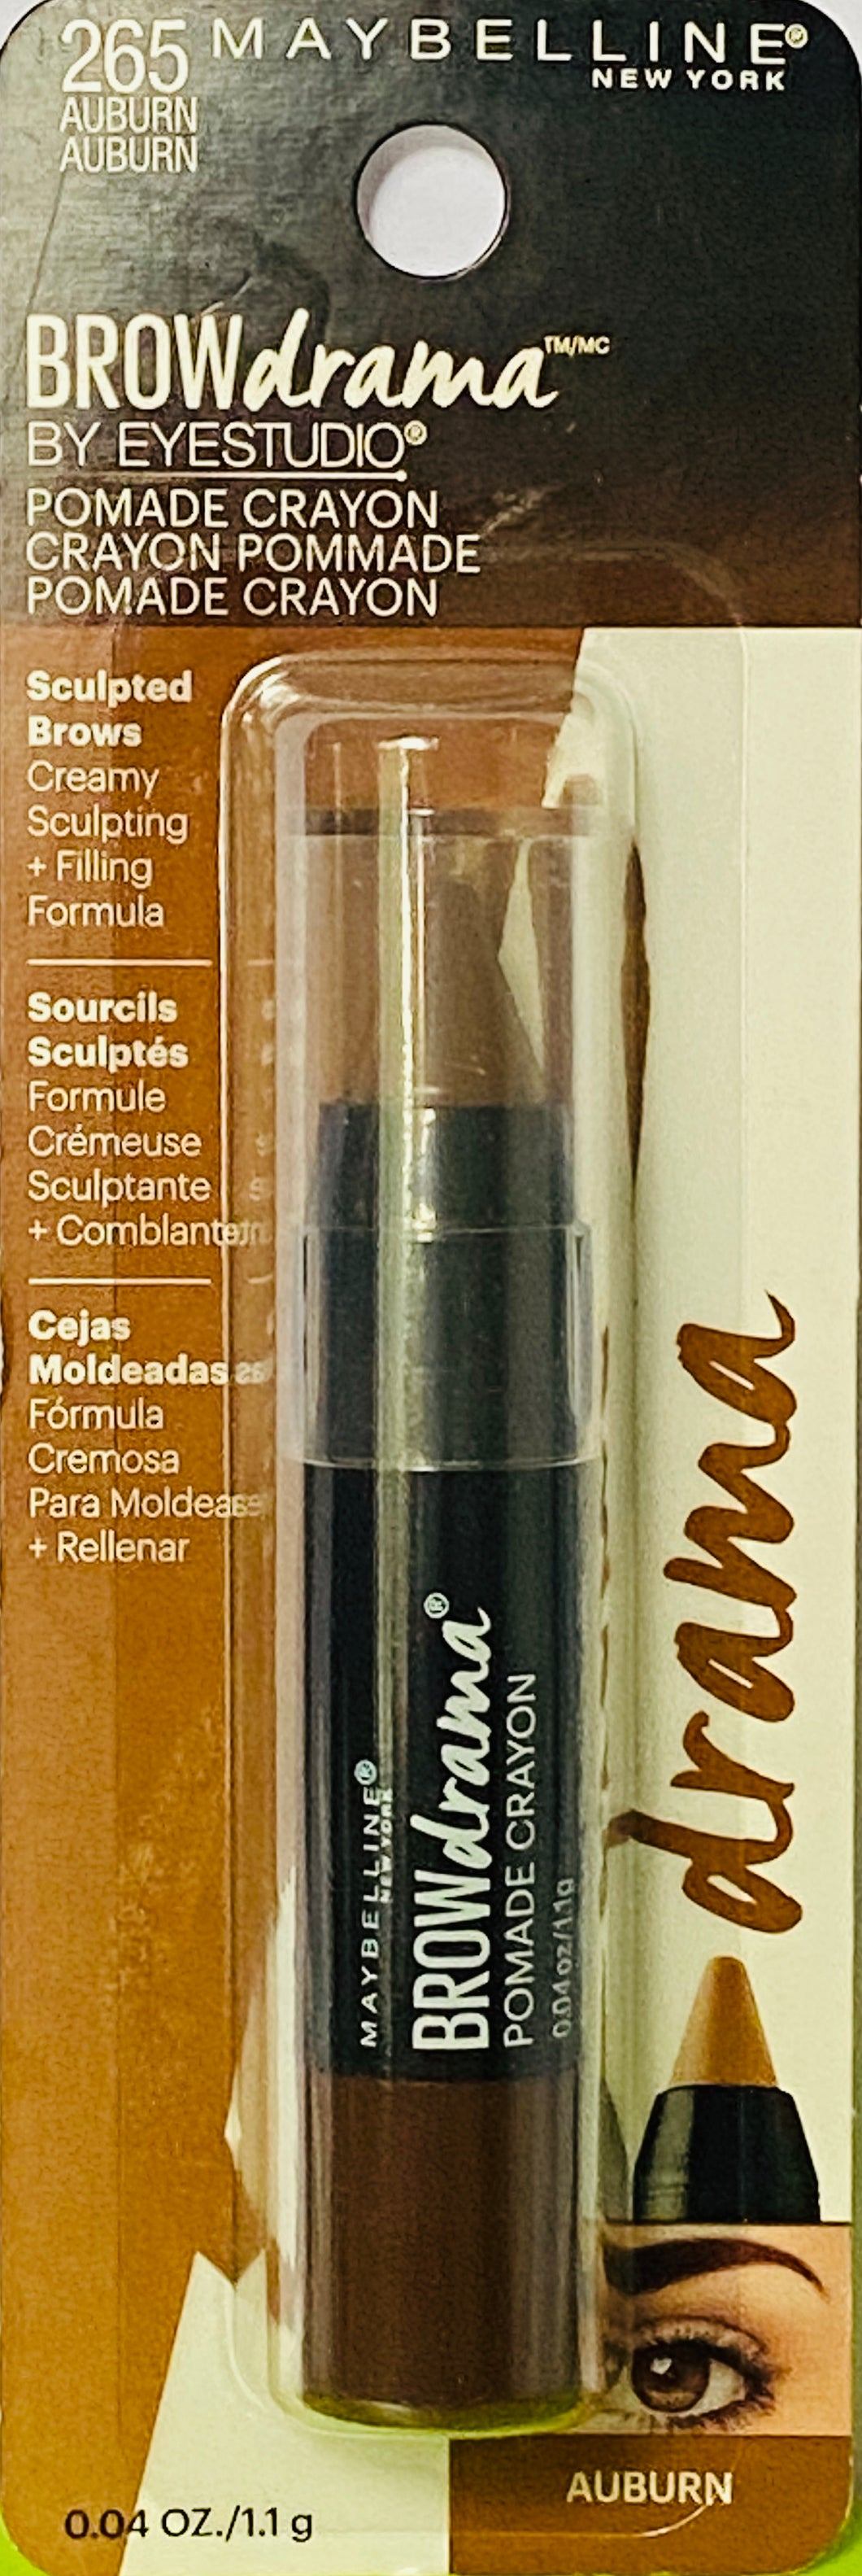 Wholesale Maybelline Brow Drama By EyeStudio - Pomade Crayon - 265 Auburn - 0.04 OZ. / 1.1g - 48 Pieces Lot